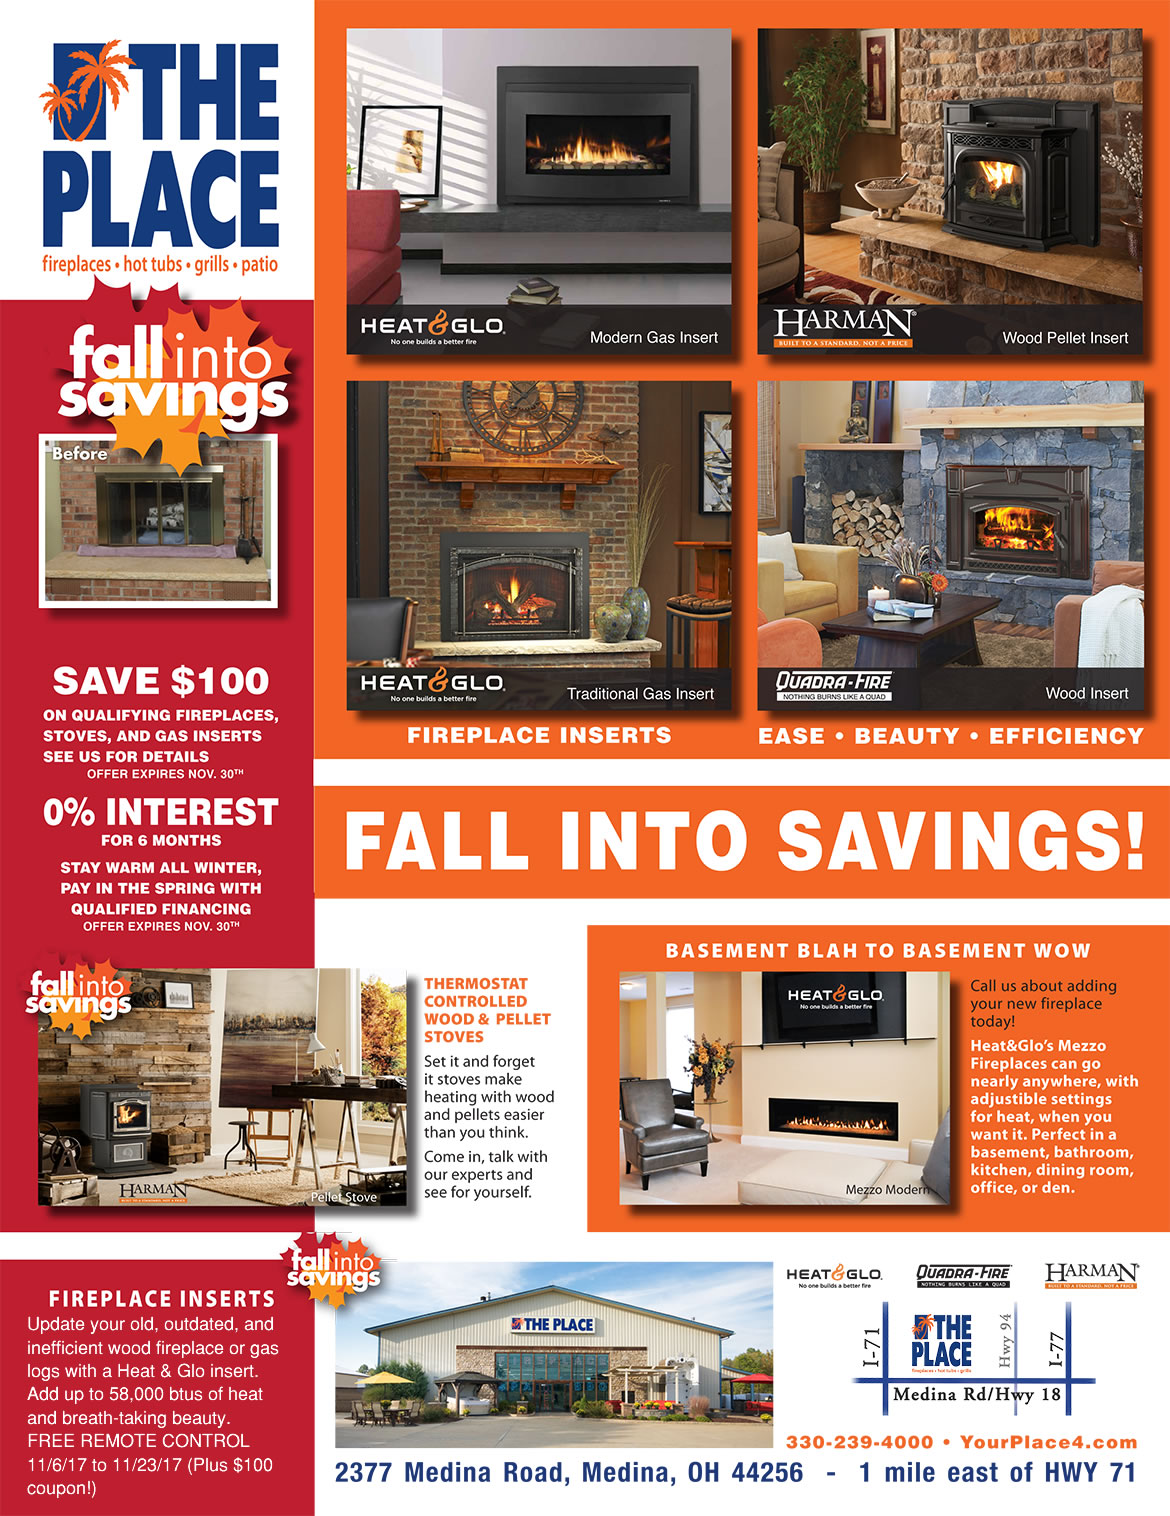 Fall Fireplace Sale at The Place in Medina